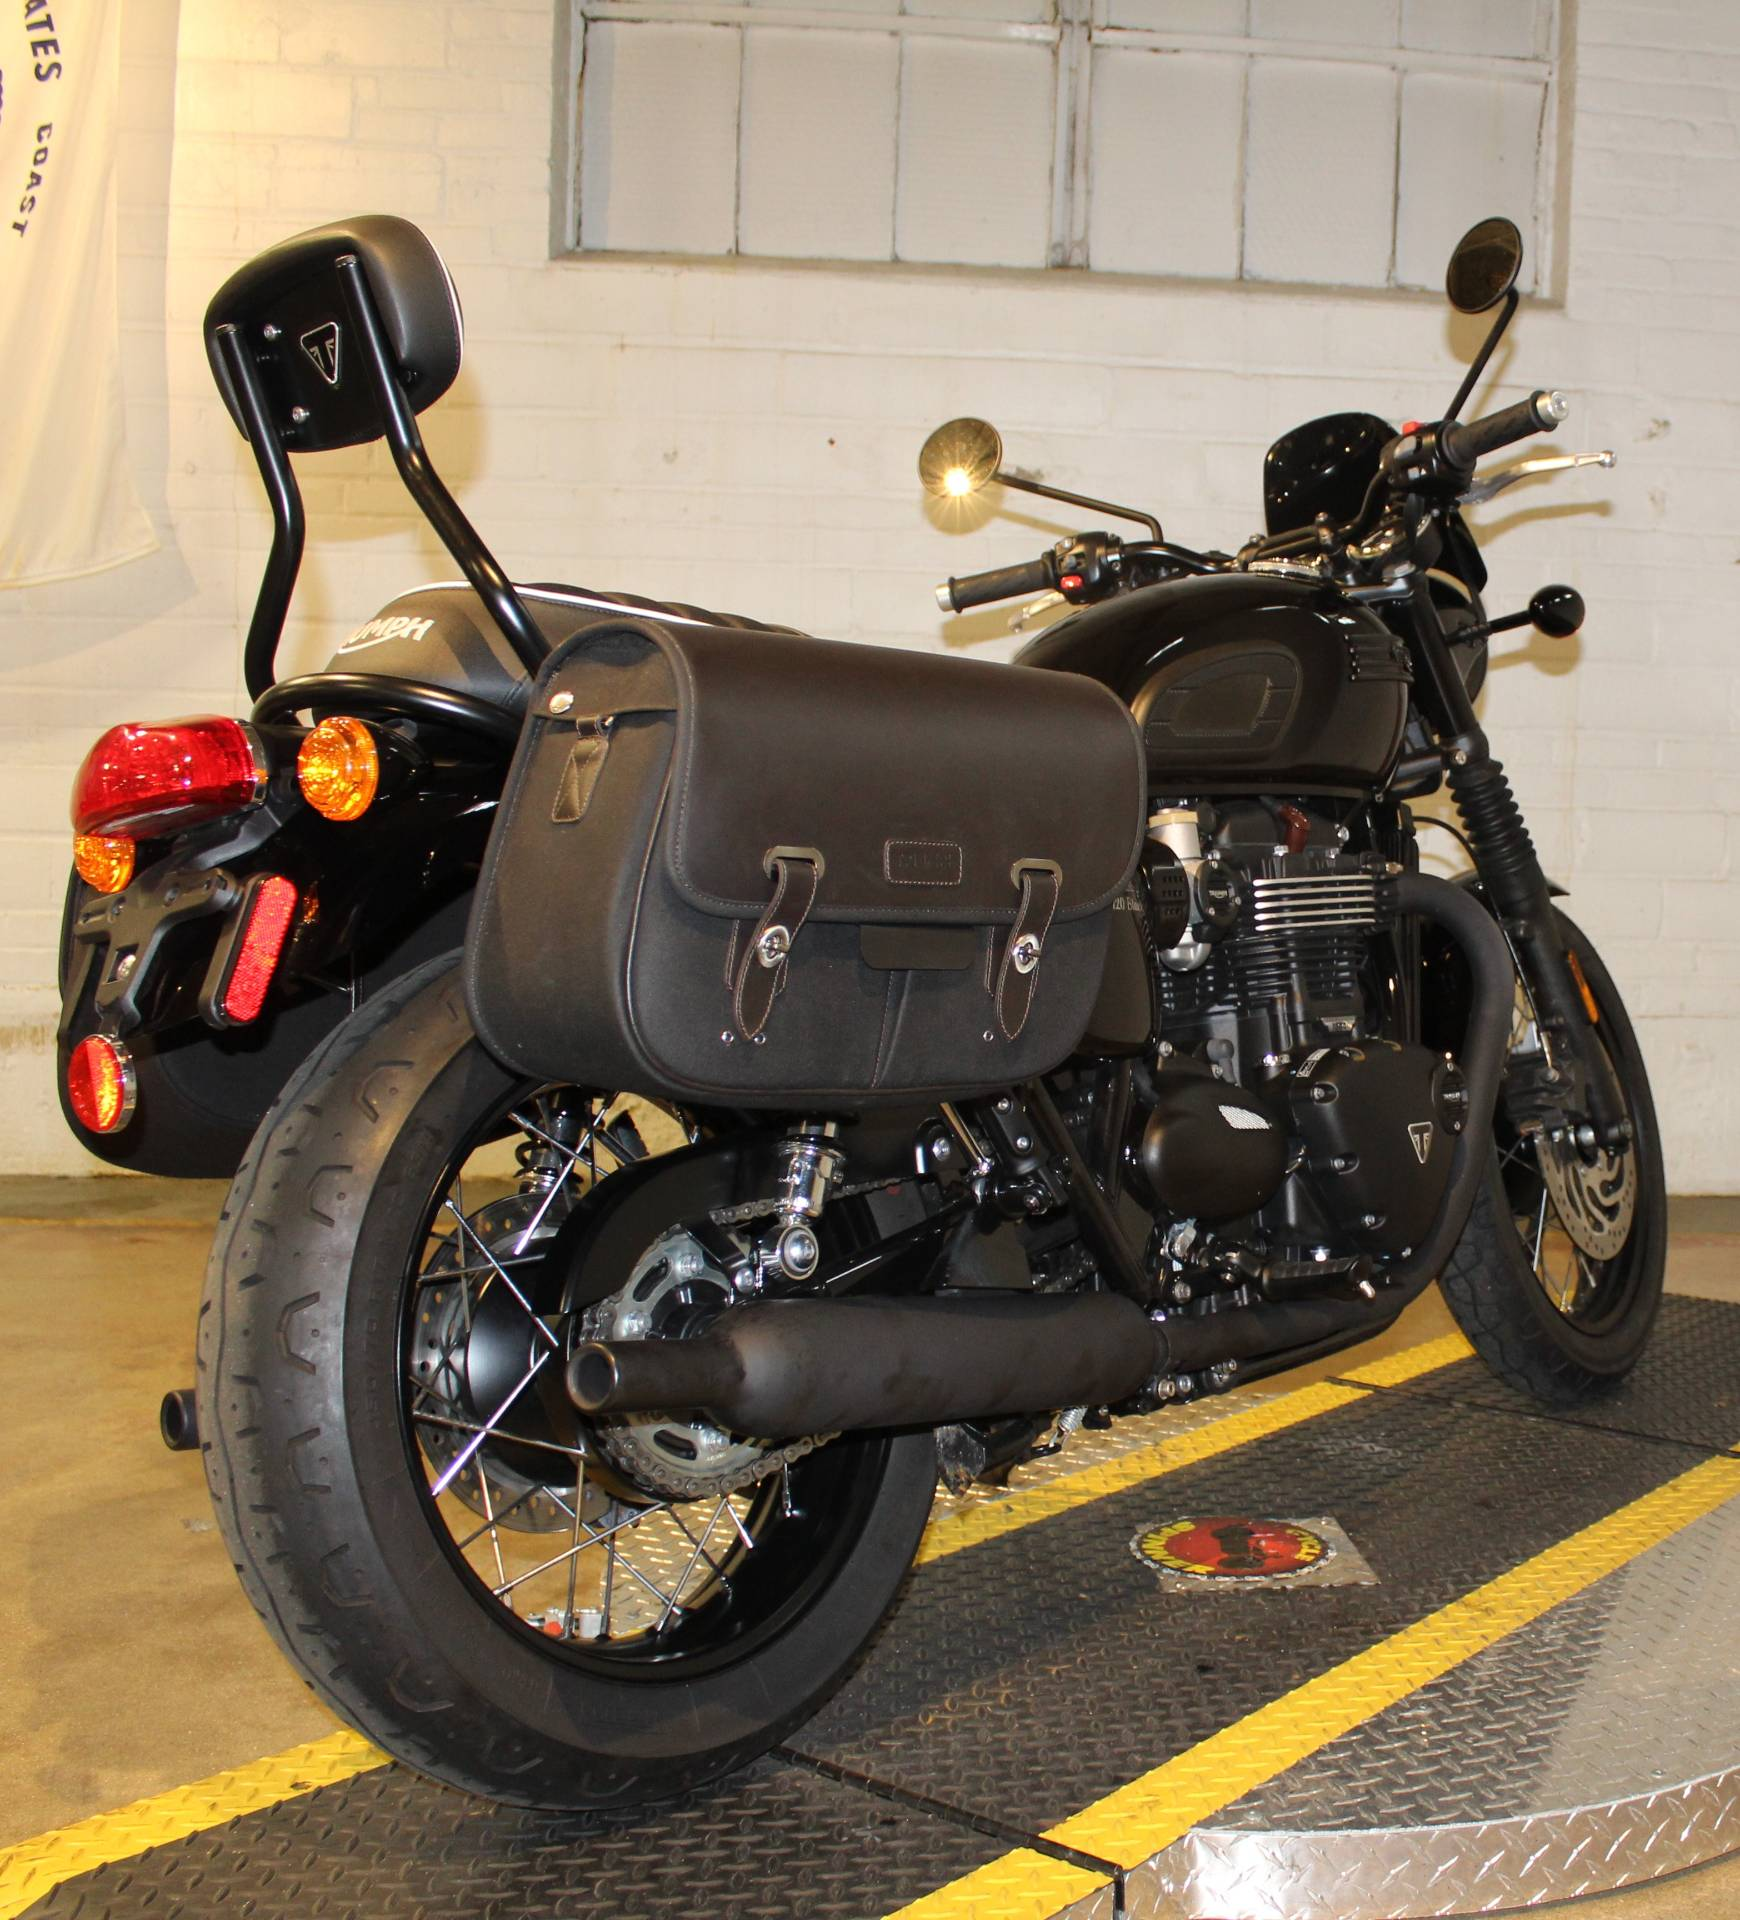 2018 Triumph Bonneville T120 in New London, Connecticut - Photo 2